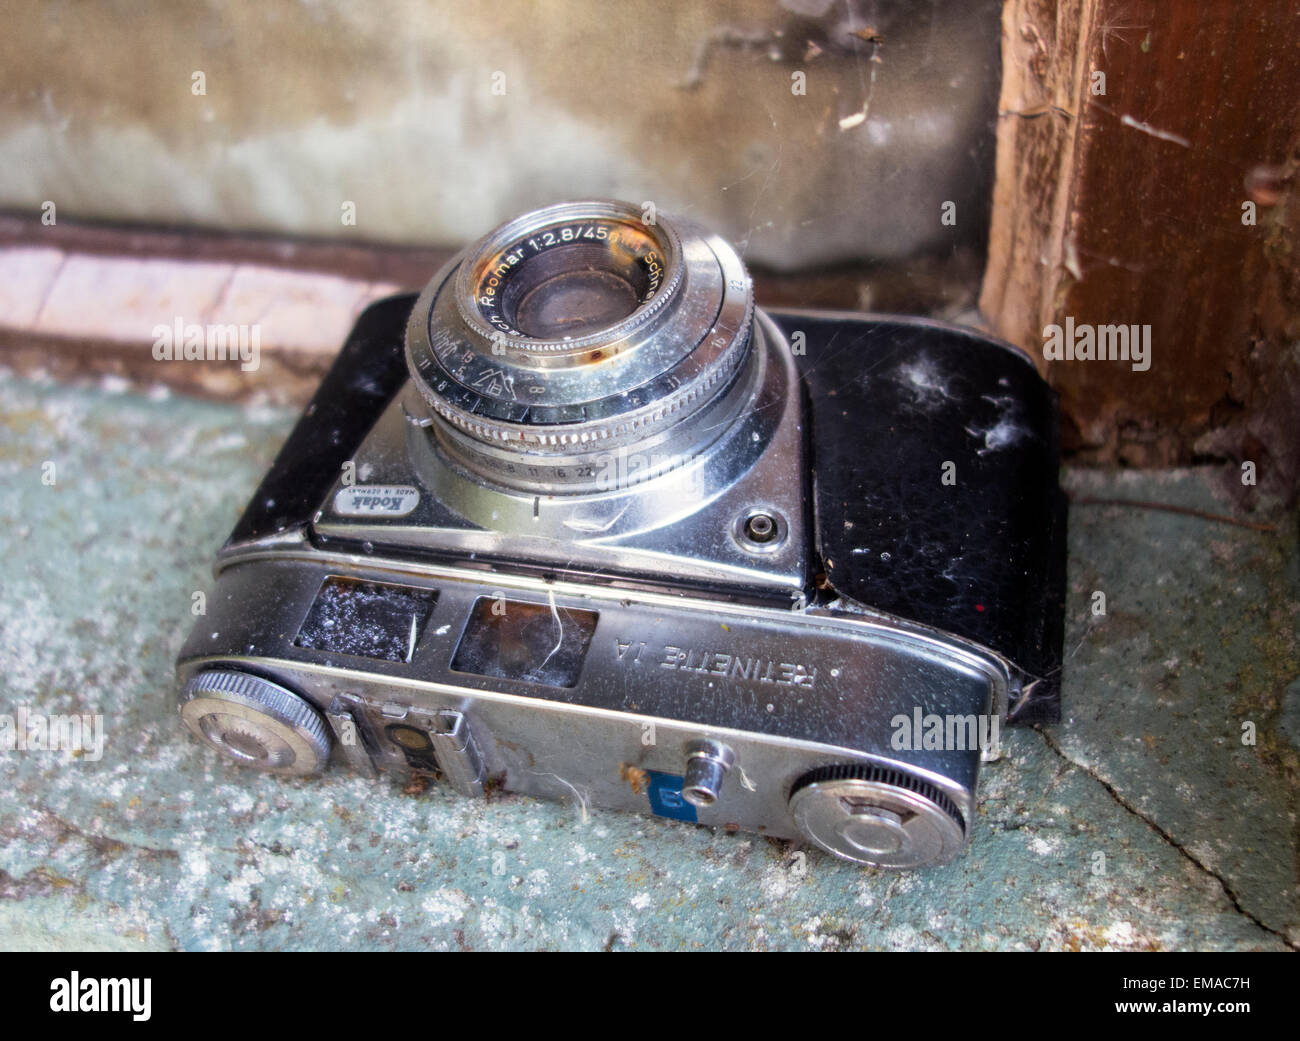 A neglected old and rusty Kodak Retinette 35mm camera - Stock Image